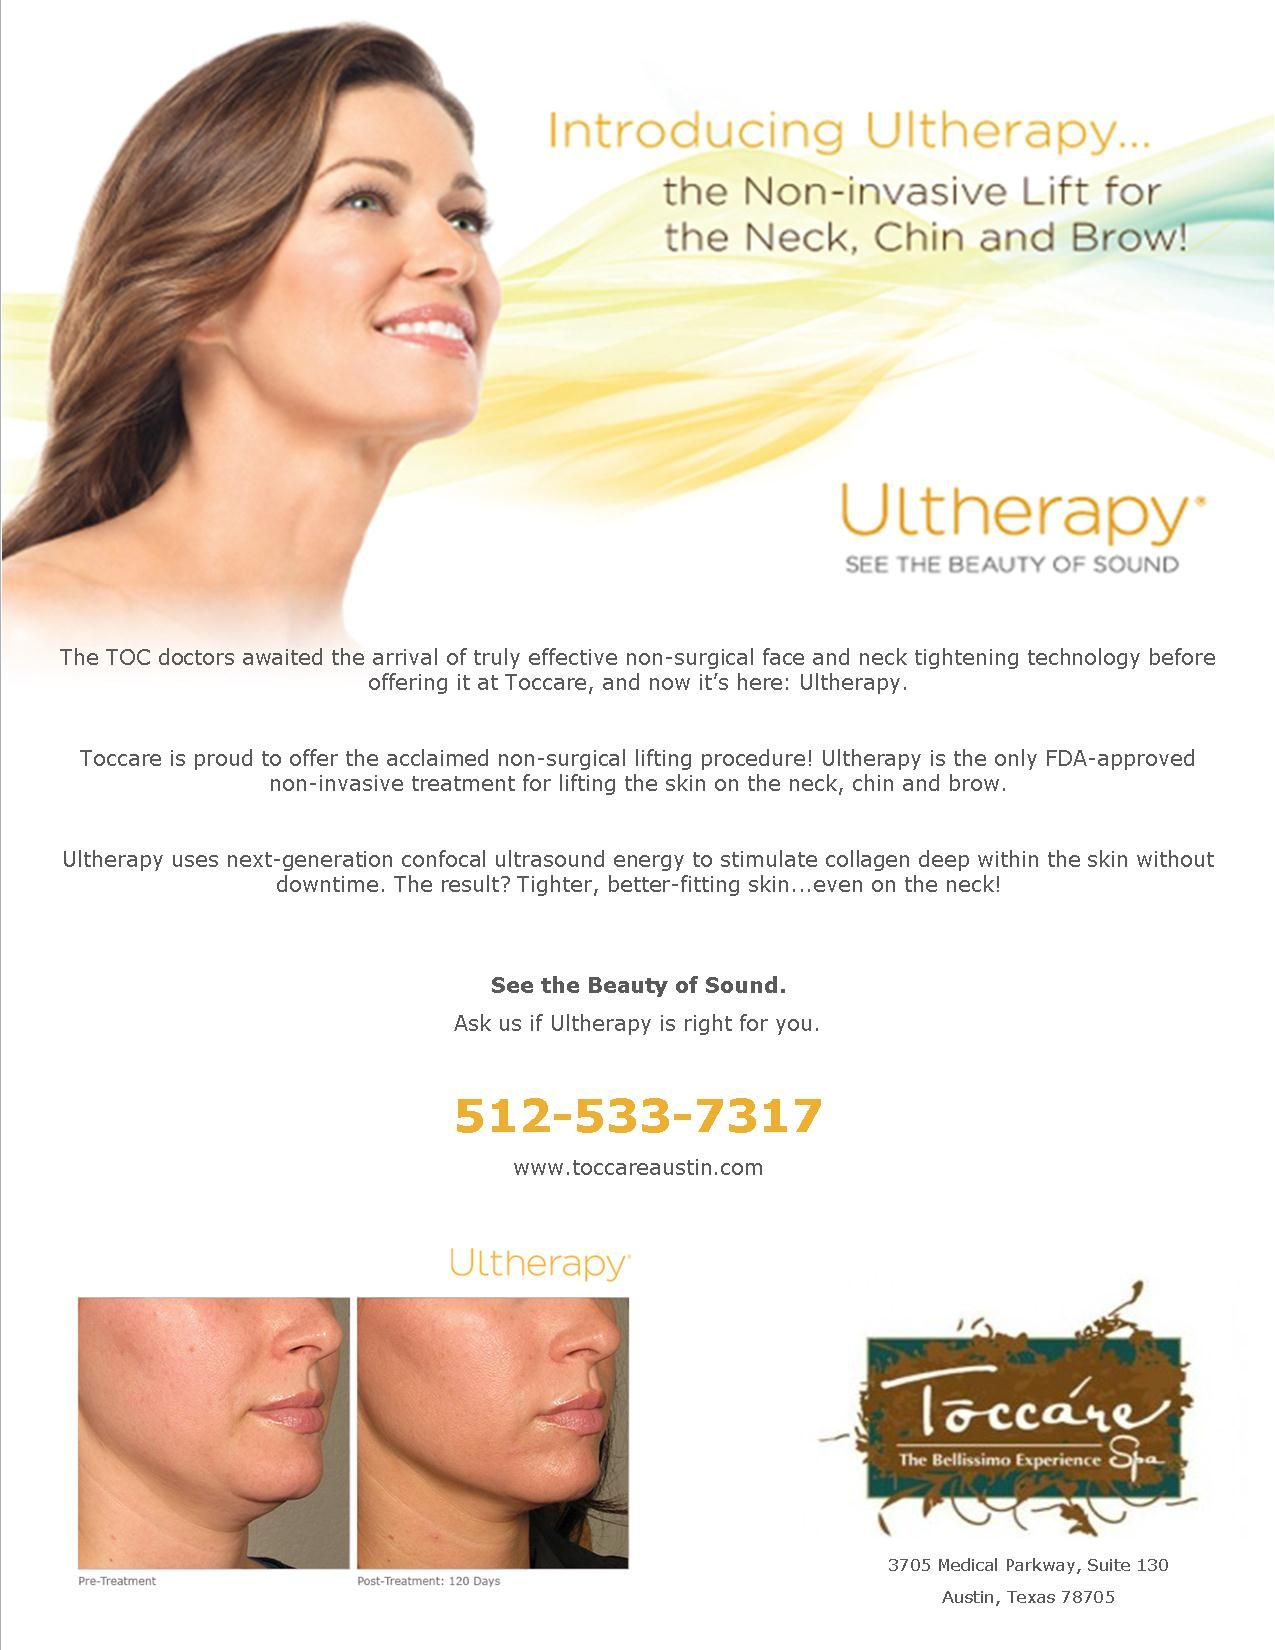 Ultheraypy At Toccare Med Spa For More Information 512 533 7317 Www Toccareaustin Com Ultrasound Technology Neck Tightening Med Spa